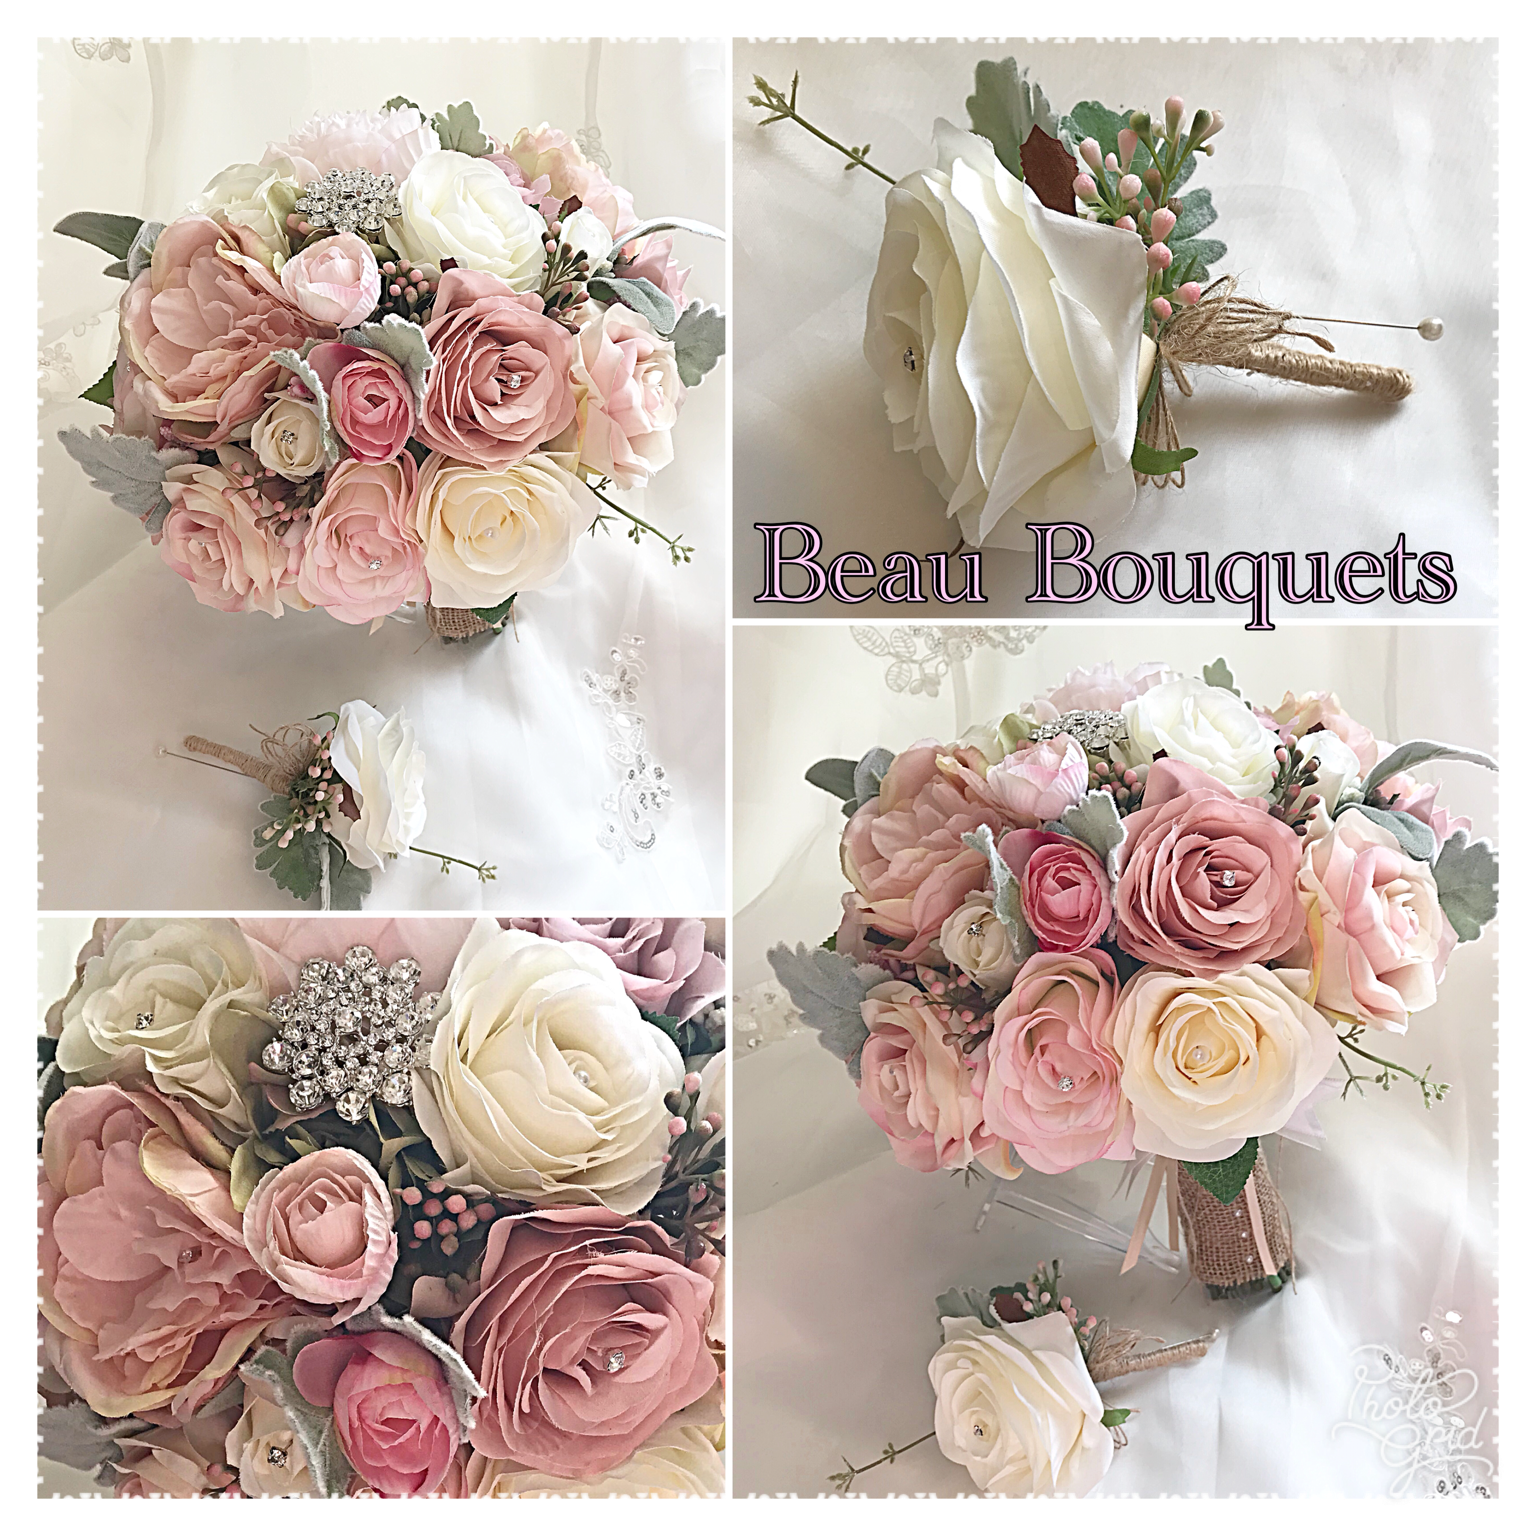 BELOVED - Round bride bouquet package Pale dusty pink, blush & cream roses with dusky green miller touches, brooch detail